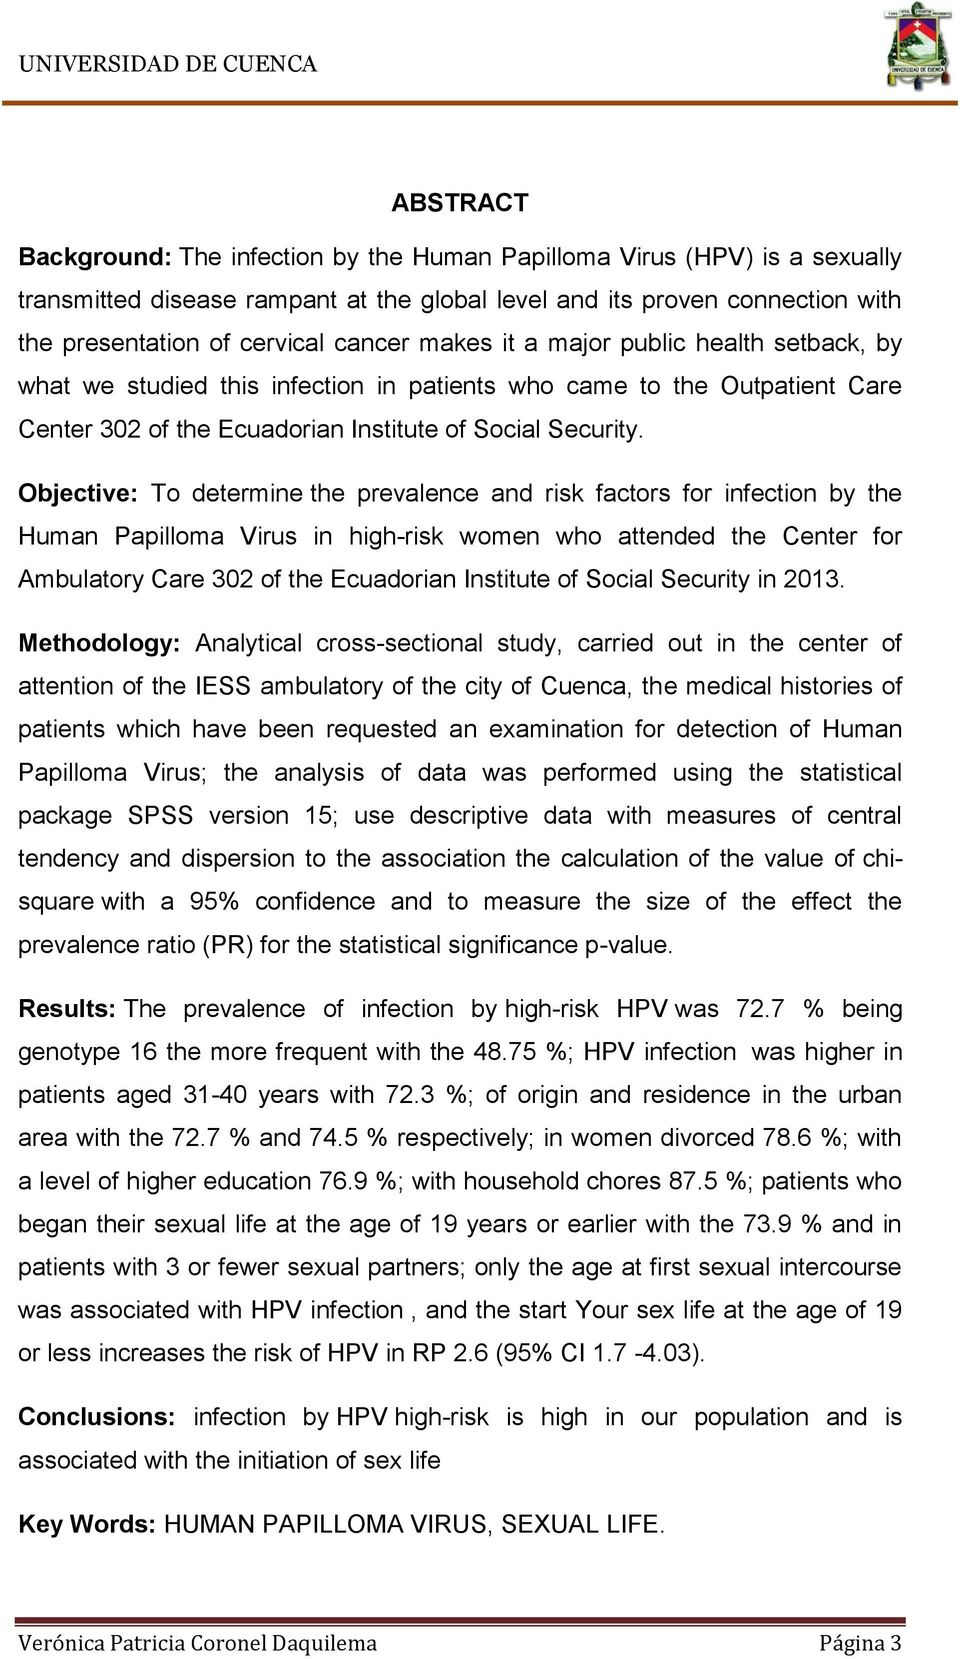 Objective: To determine the prevalence and risk factors for infection by the Human Papilloma Virus in high-risk women who attended the Center for Ambulatory Care 302 of the Ecuadorian Institute of